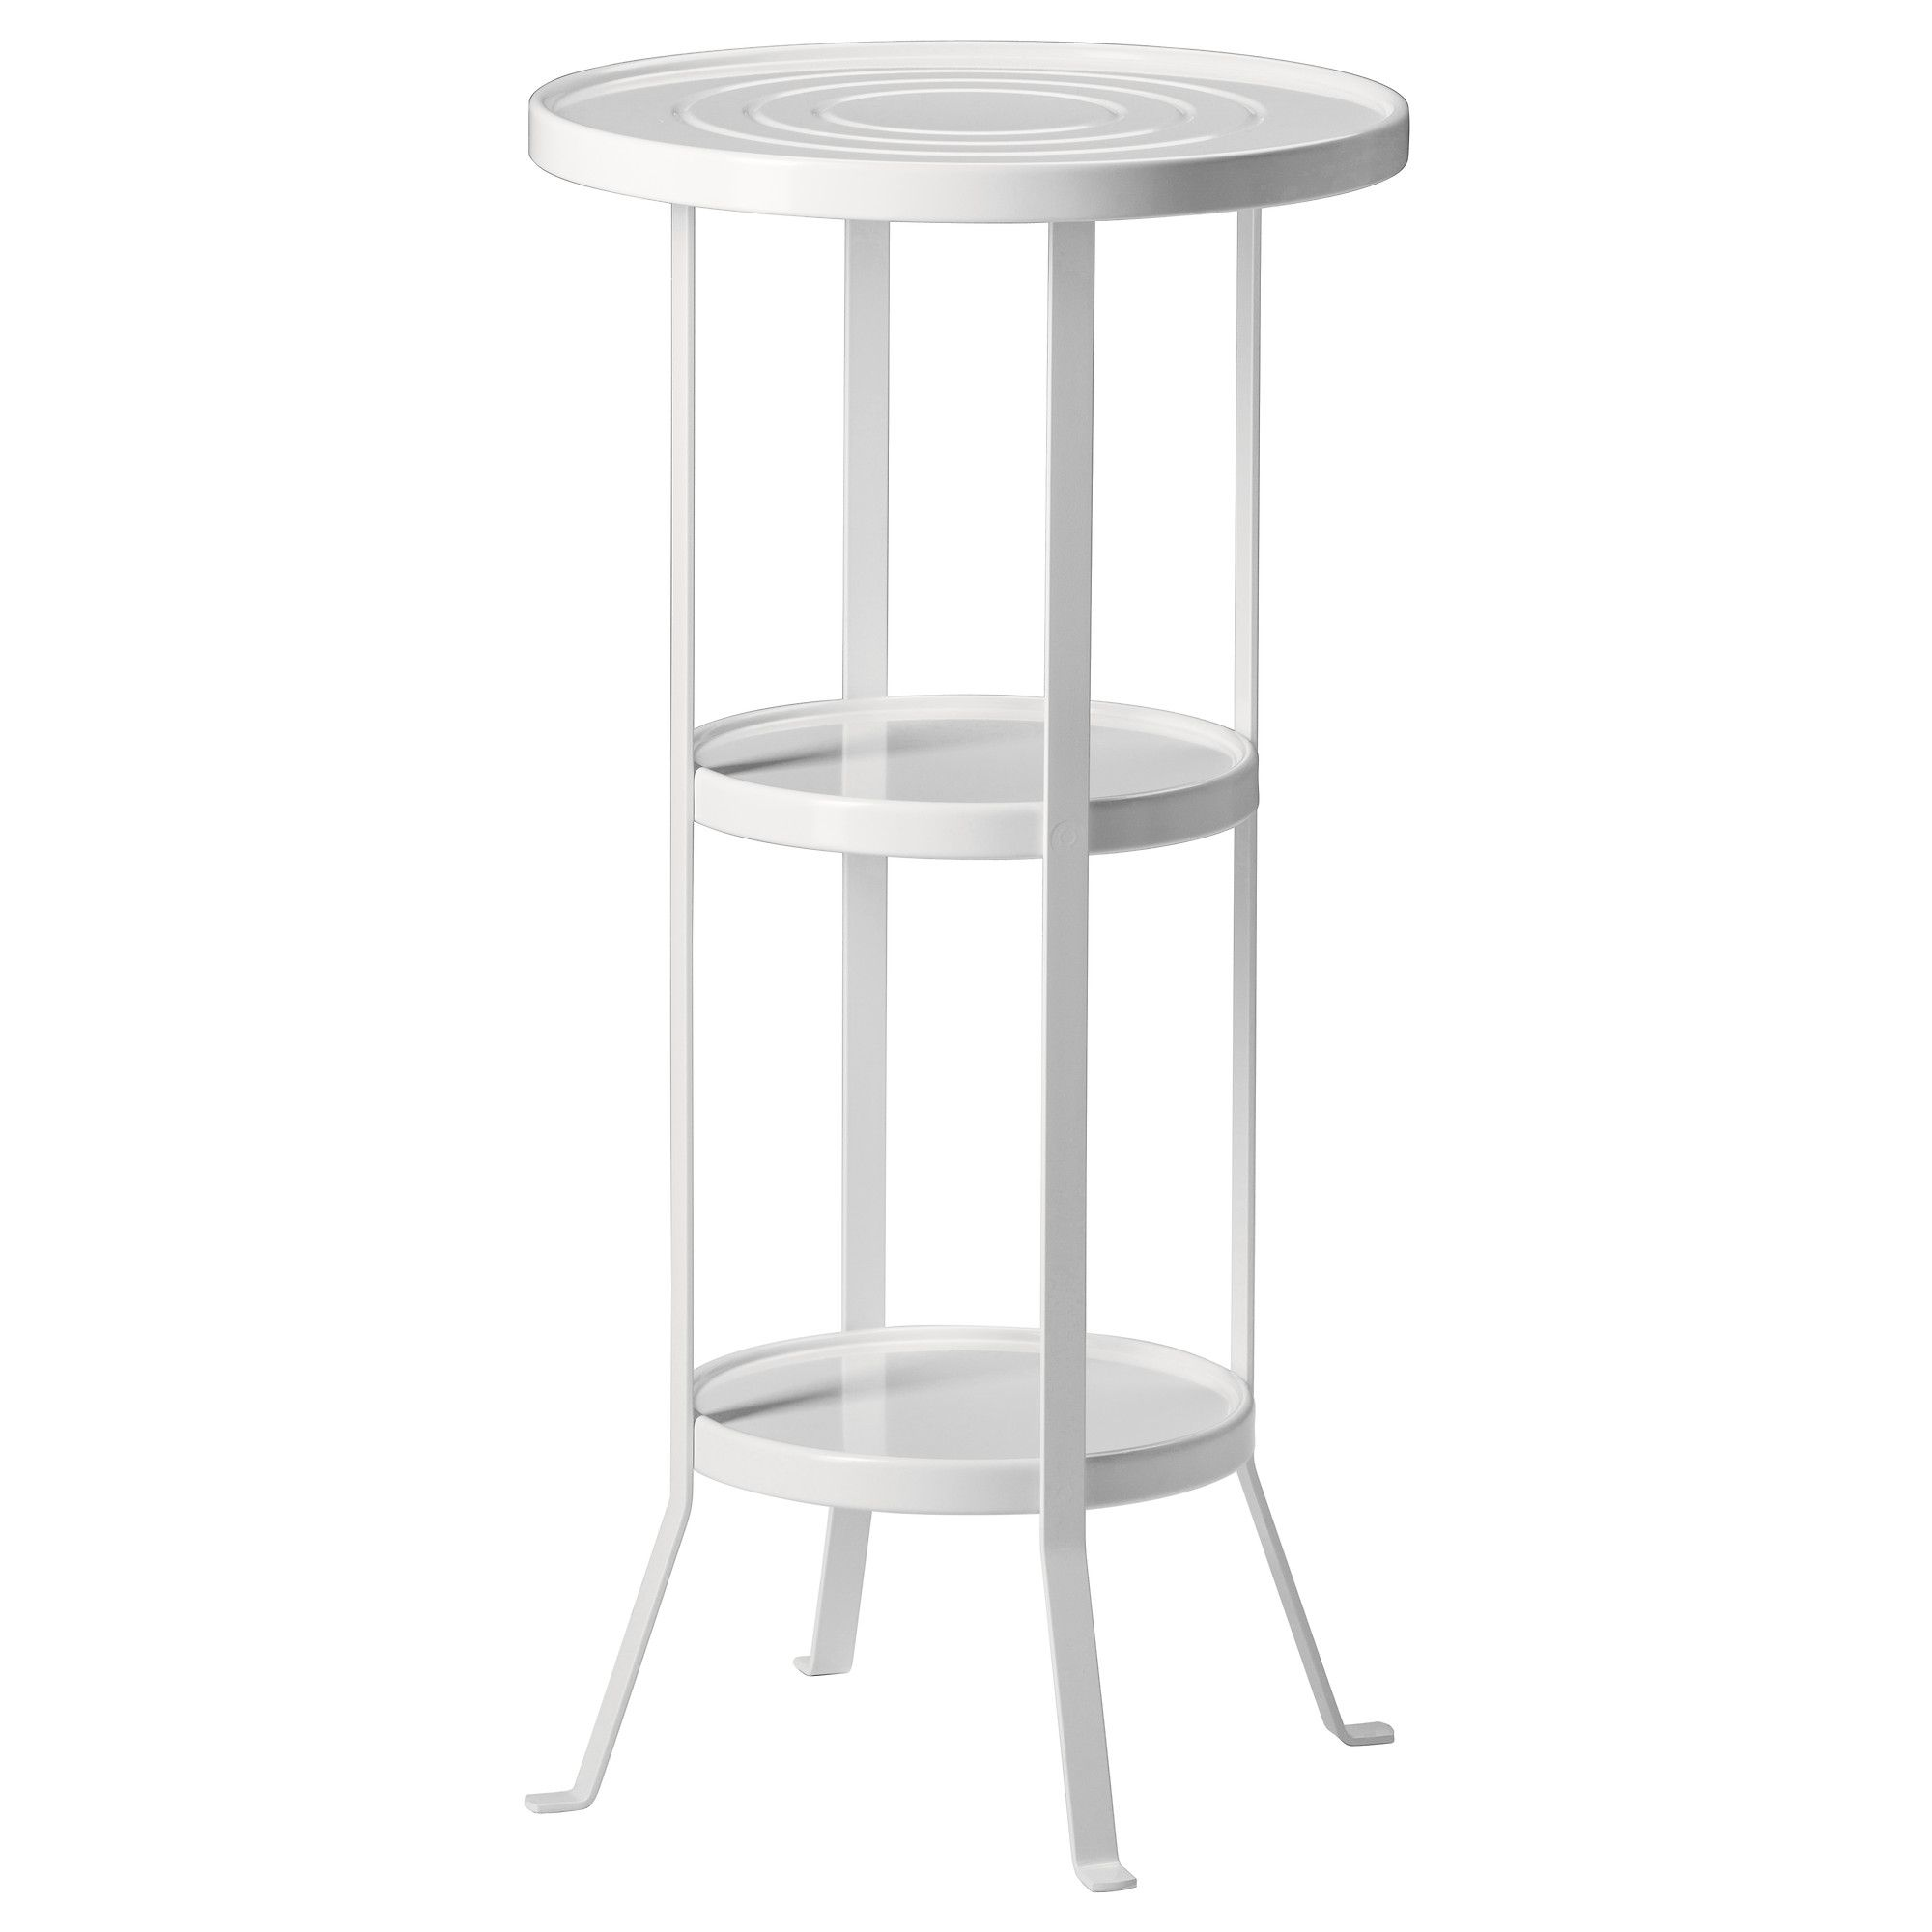 IKEA GUNNERN Pedestal Table White 38 Cm The Raised Edge Around The Table  Top Keeps Things From Sliding Off.